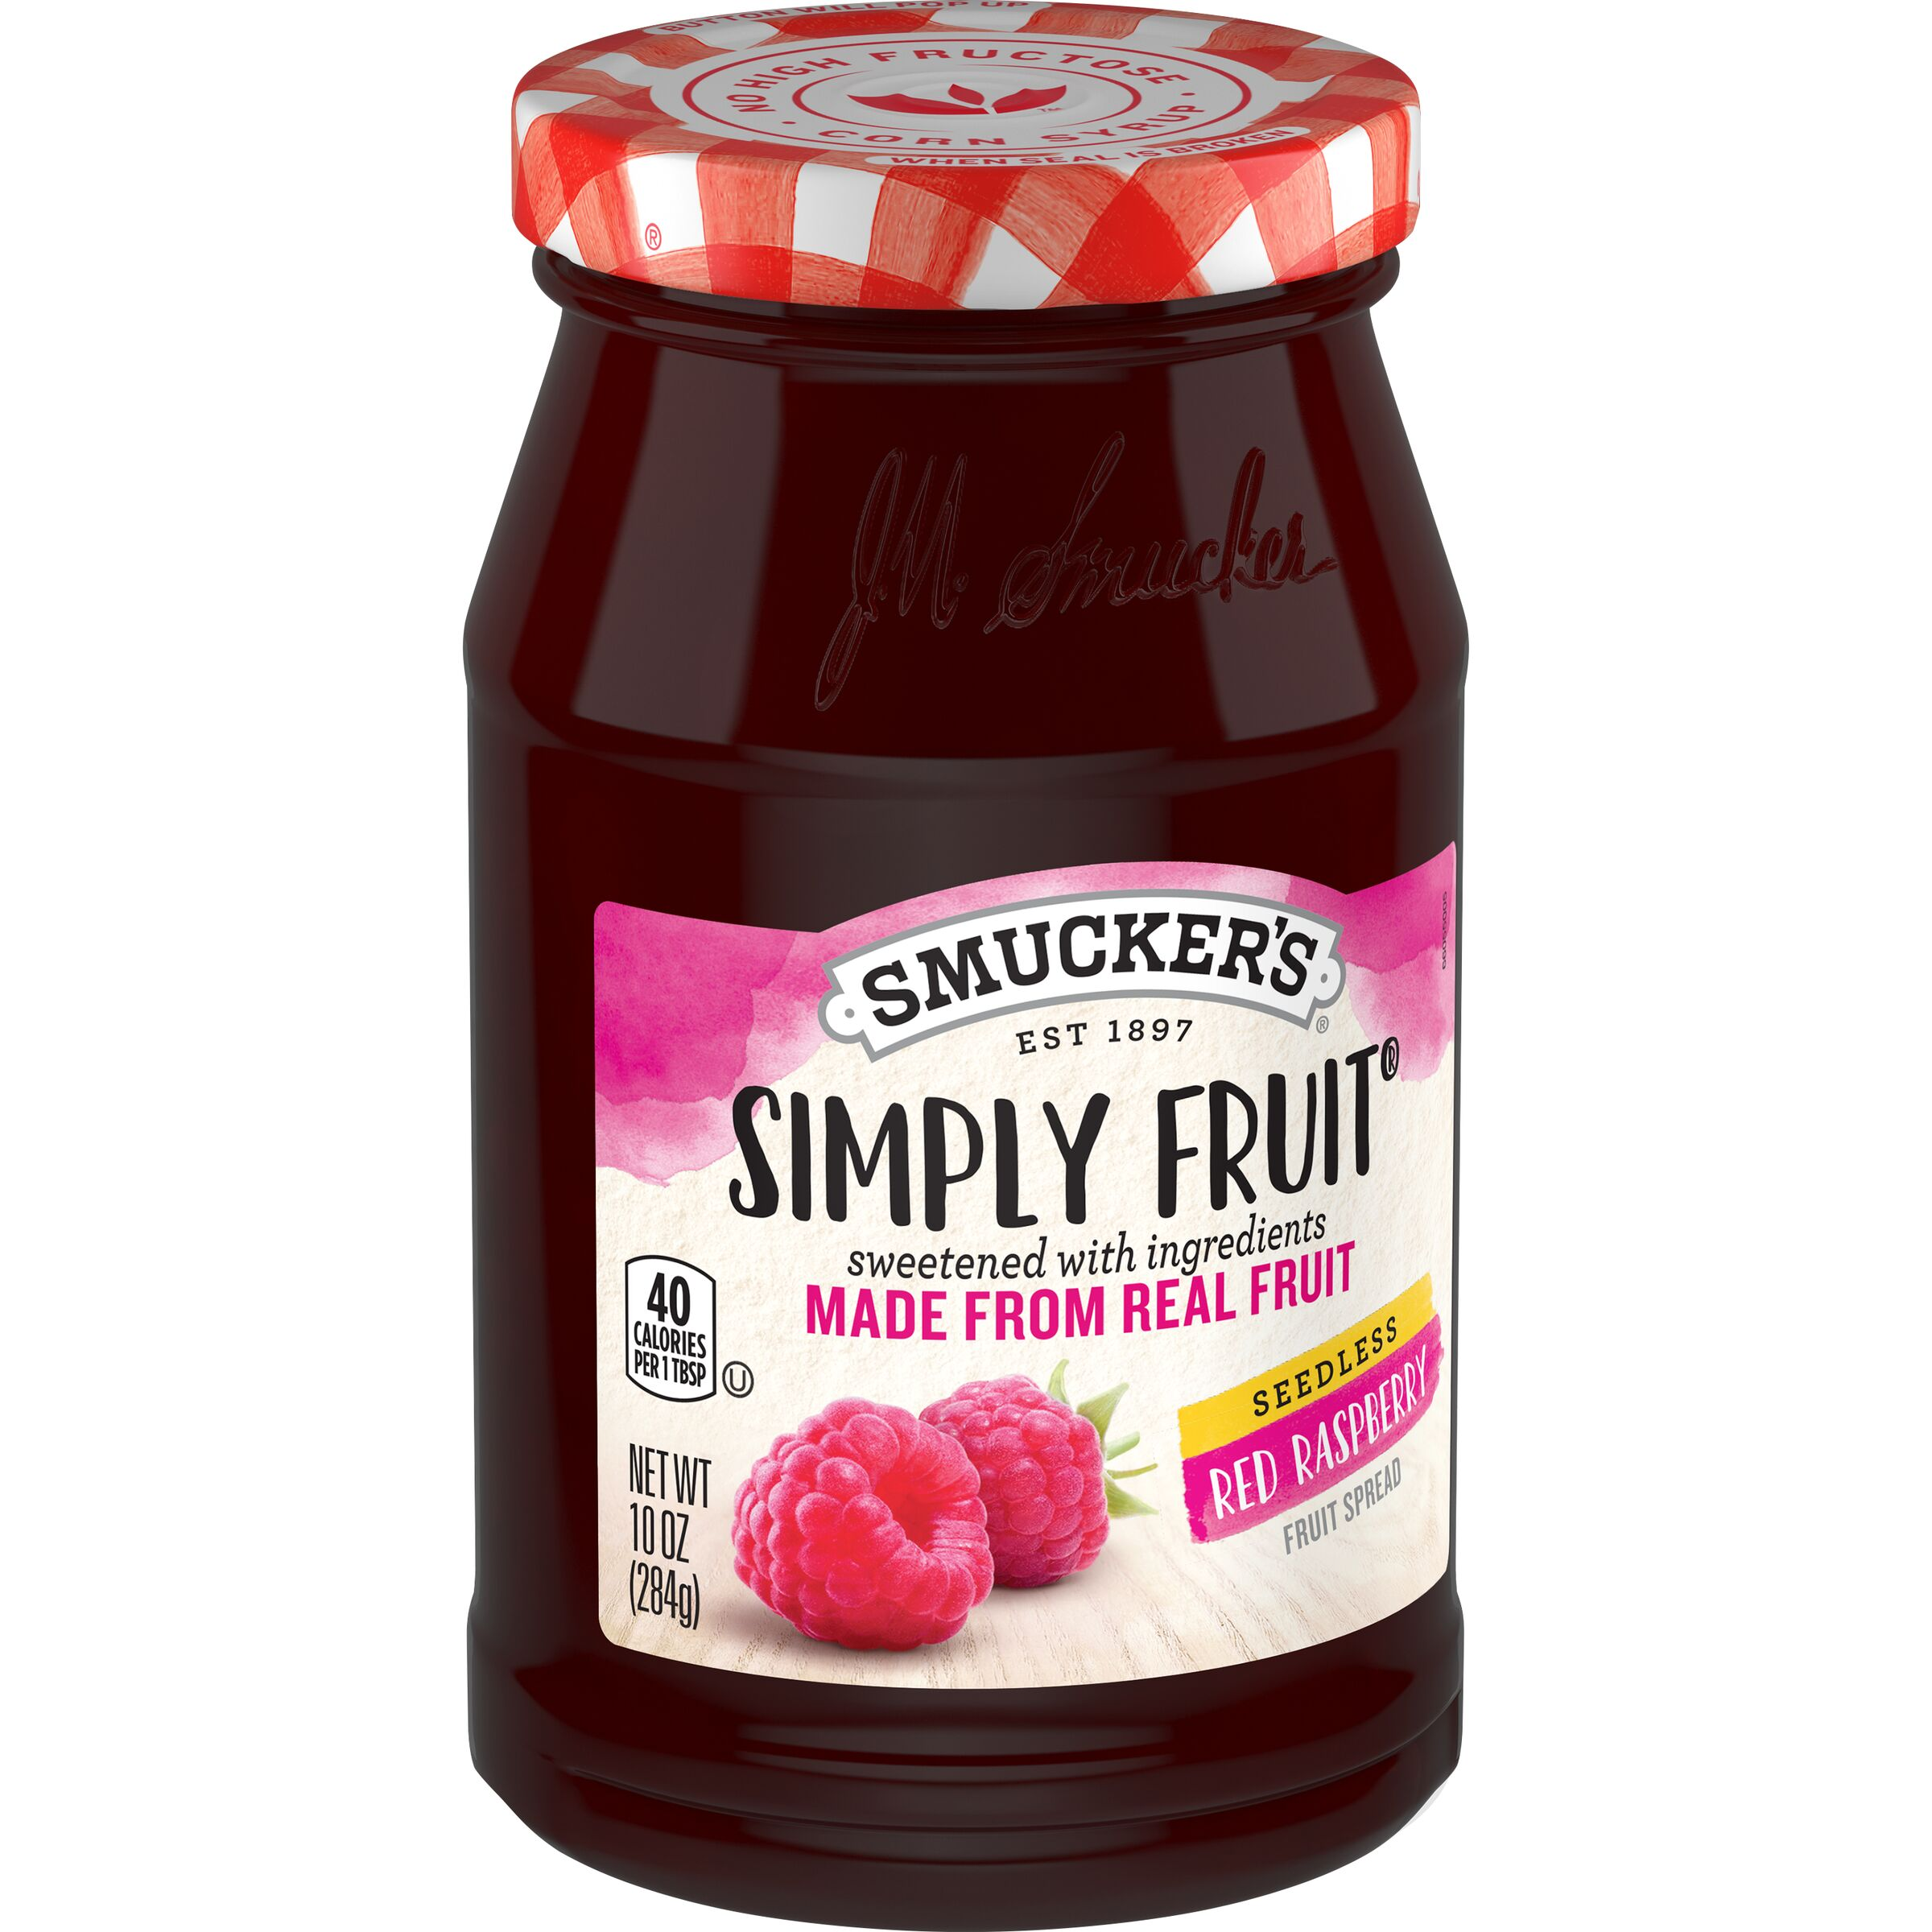 Smucker's Simply Fruit Seedless Red Raspberry Spreadable Fruit